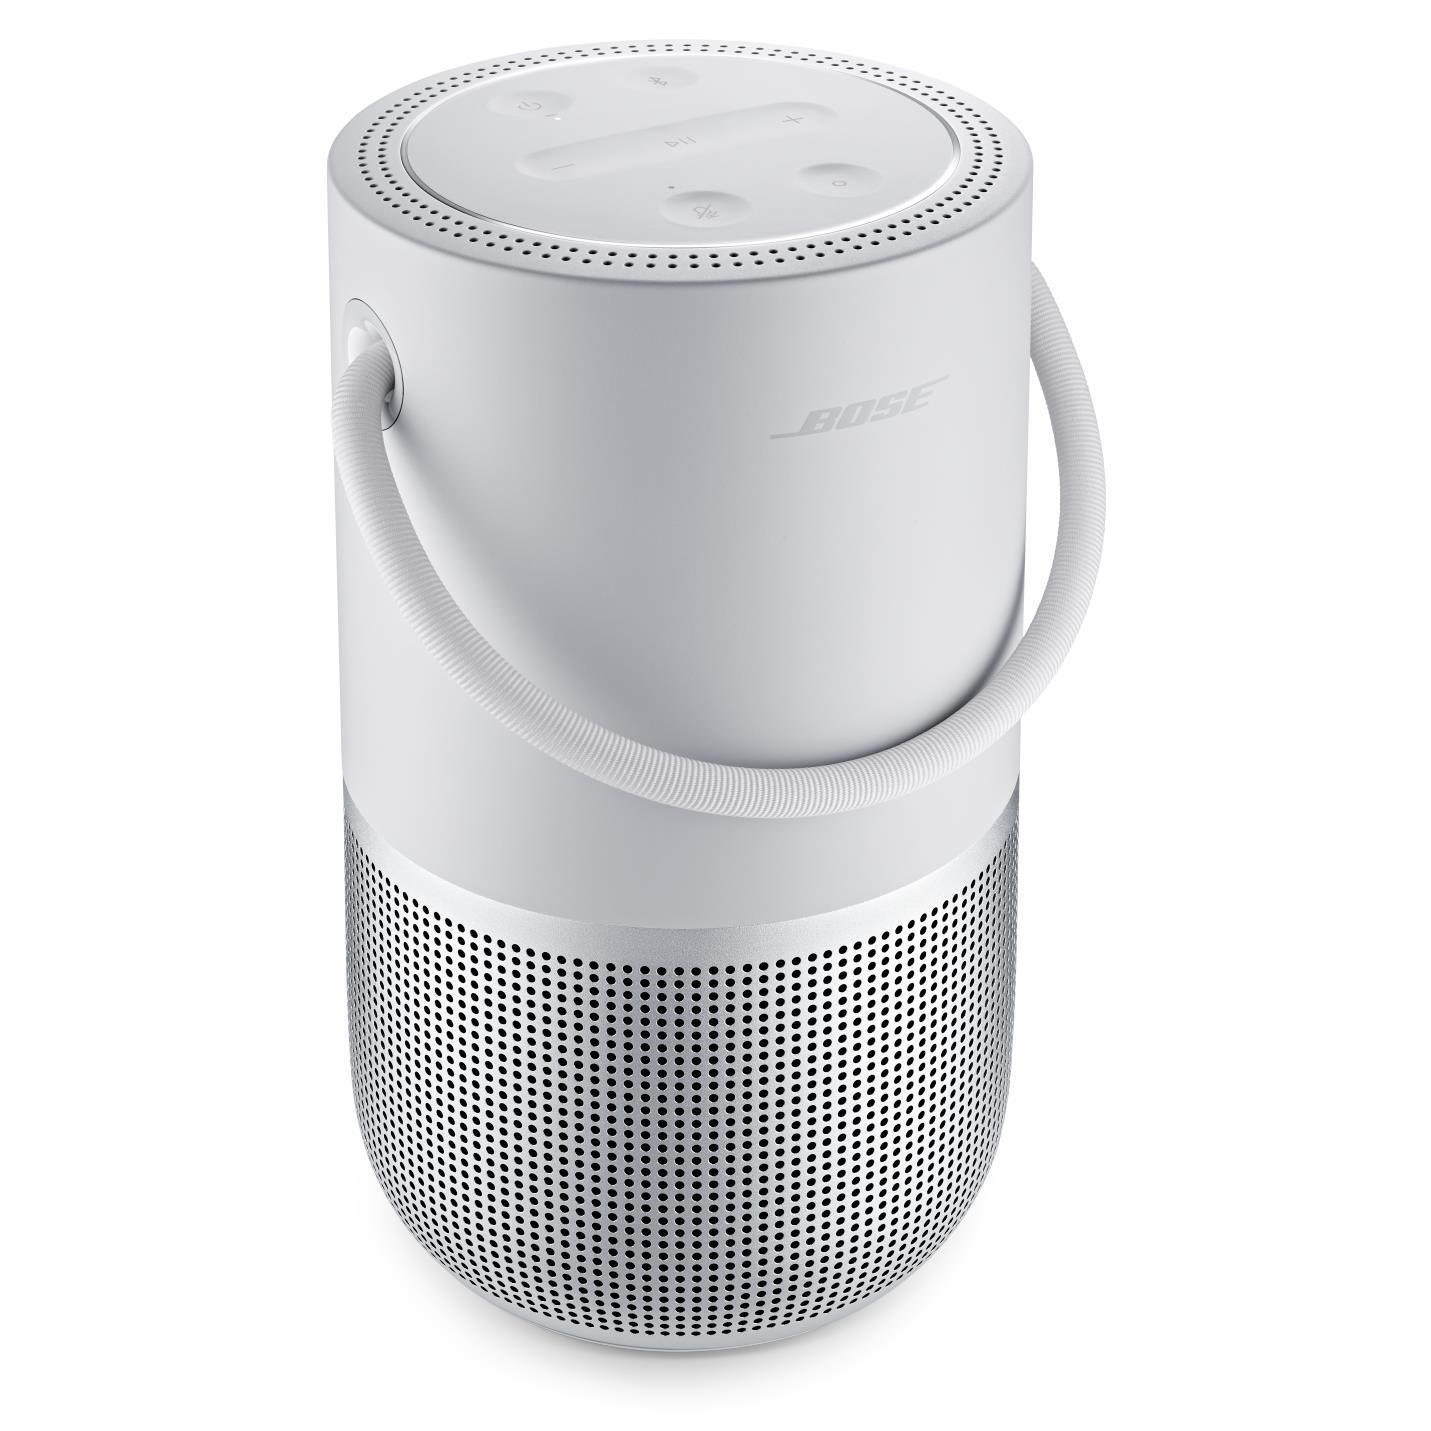 Bose Portable Home Speaker (Silver)